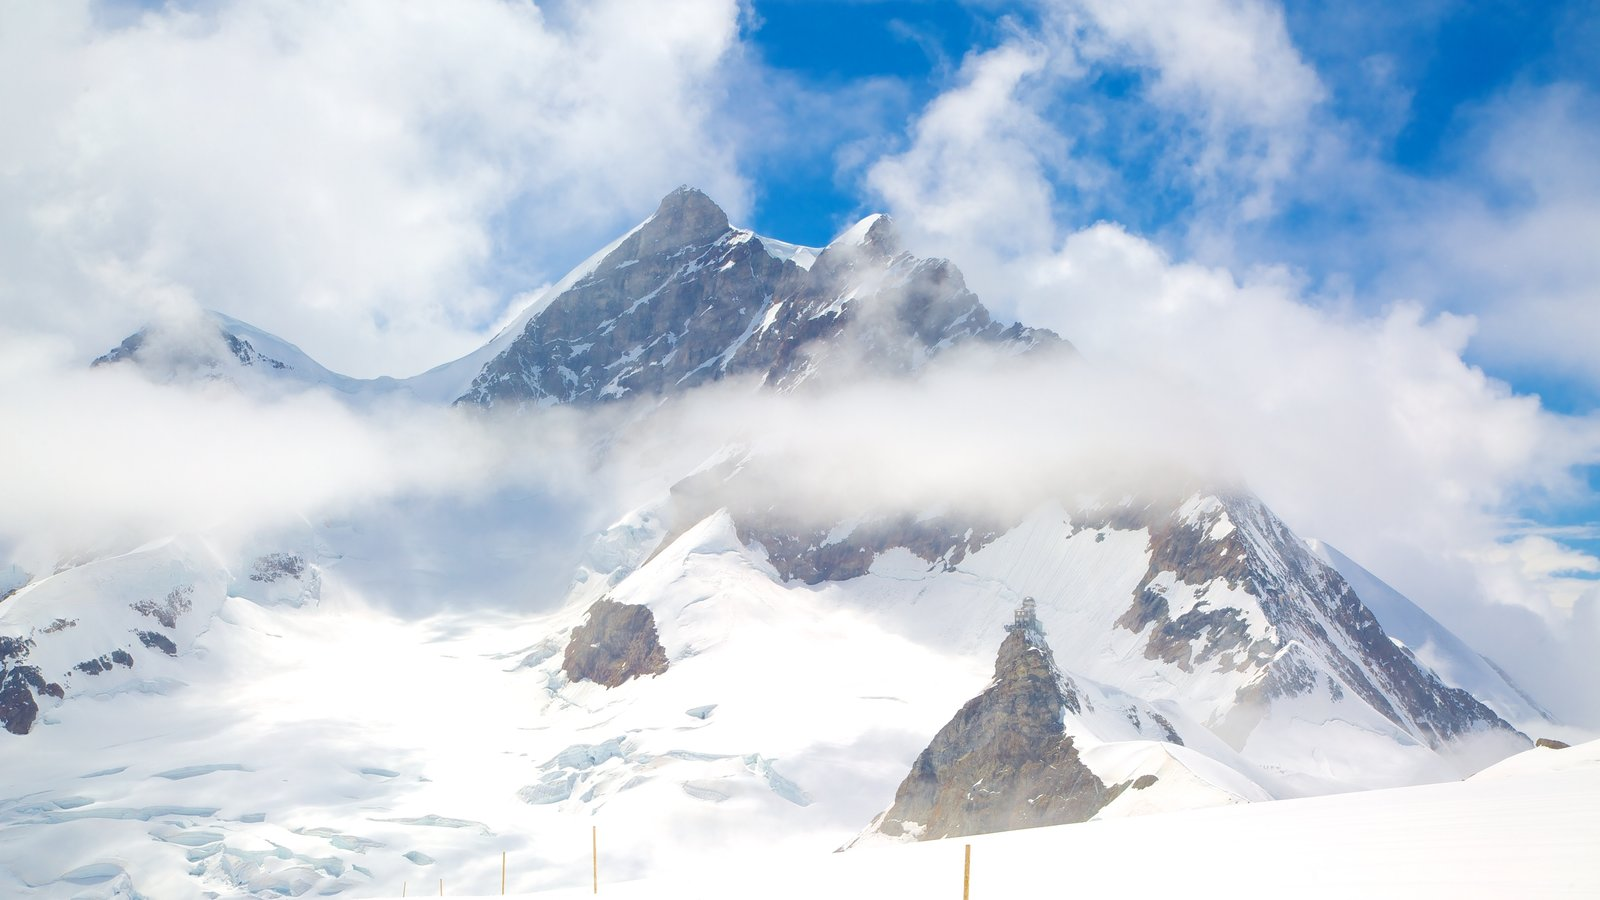 Jungfraujoch which includes mountains and snow